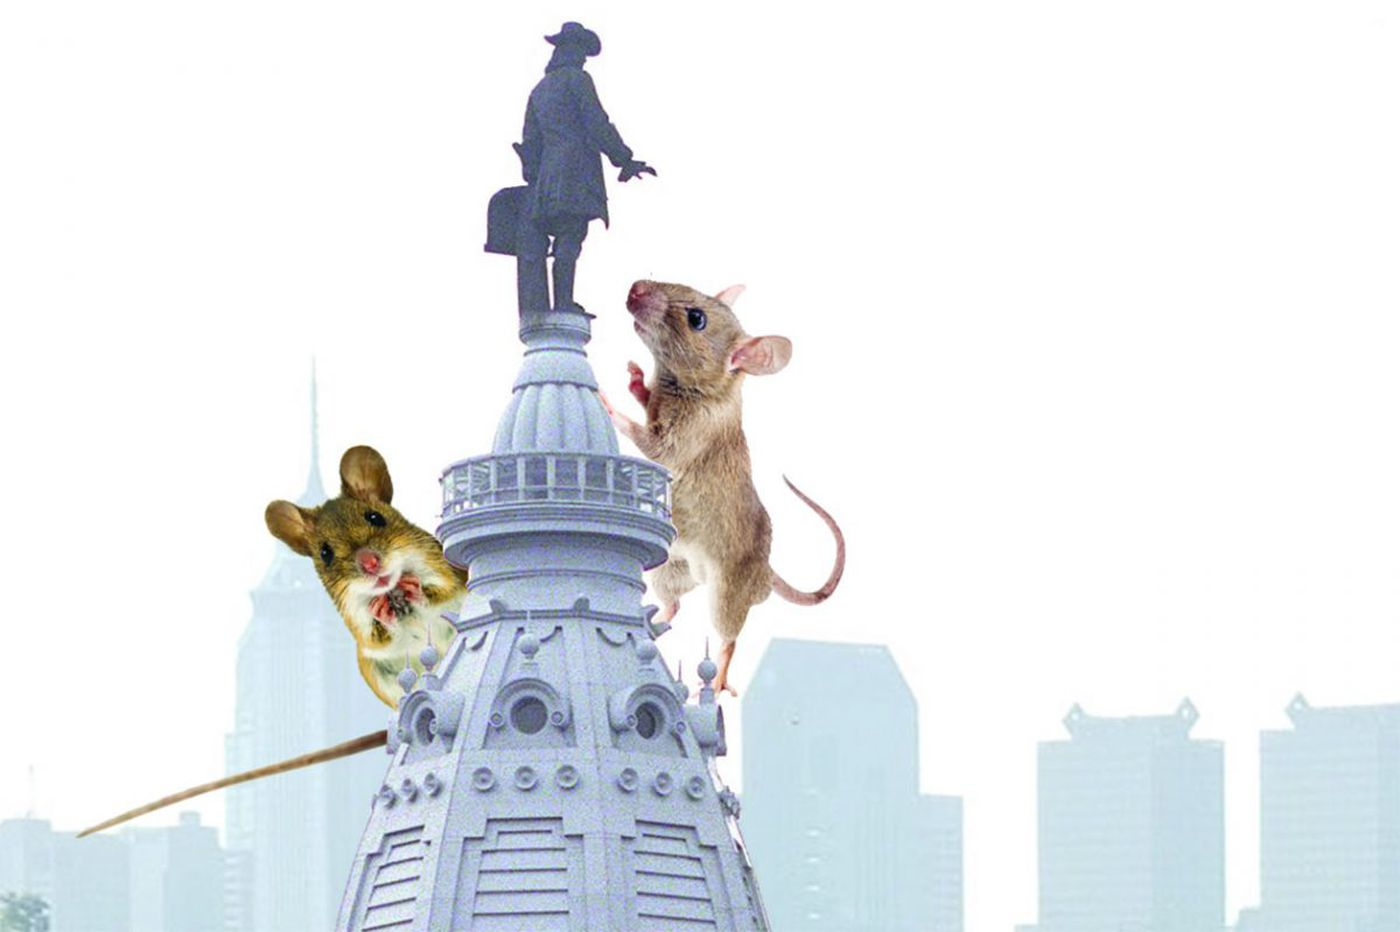 Mice seen as invading City Hall